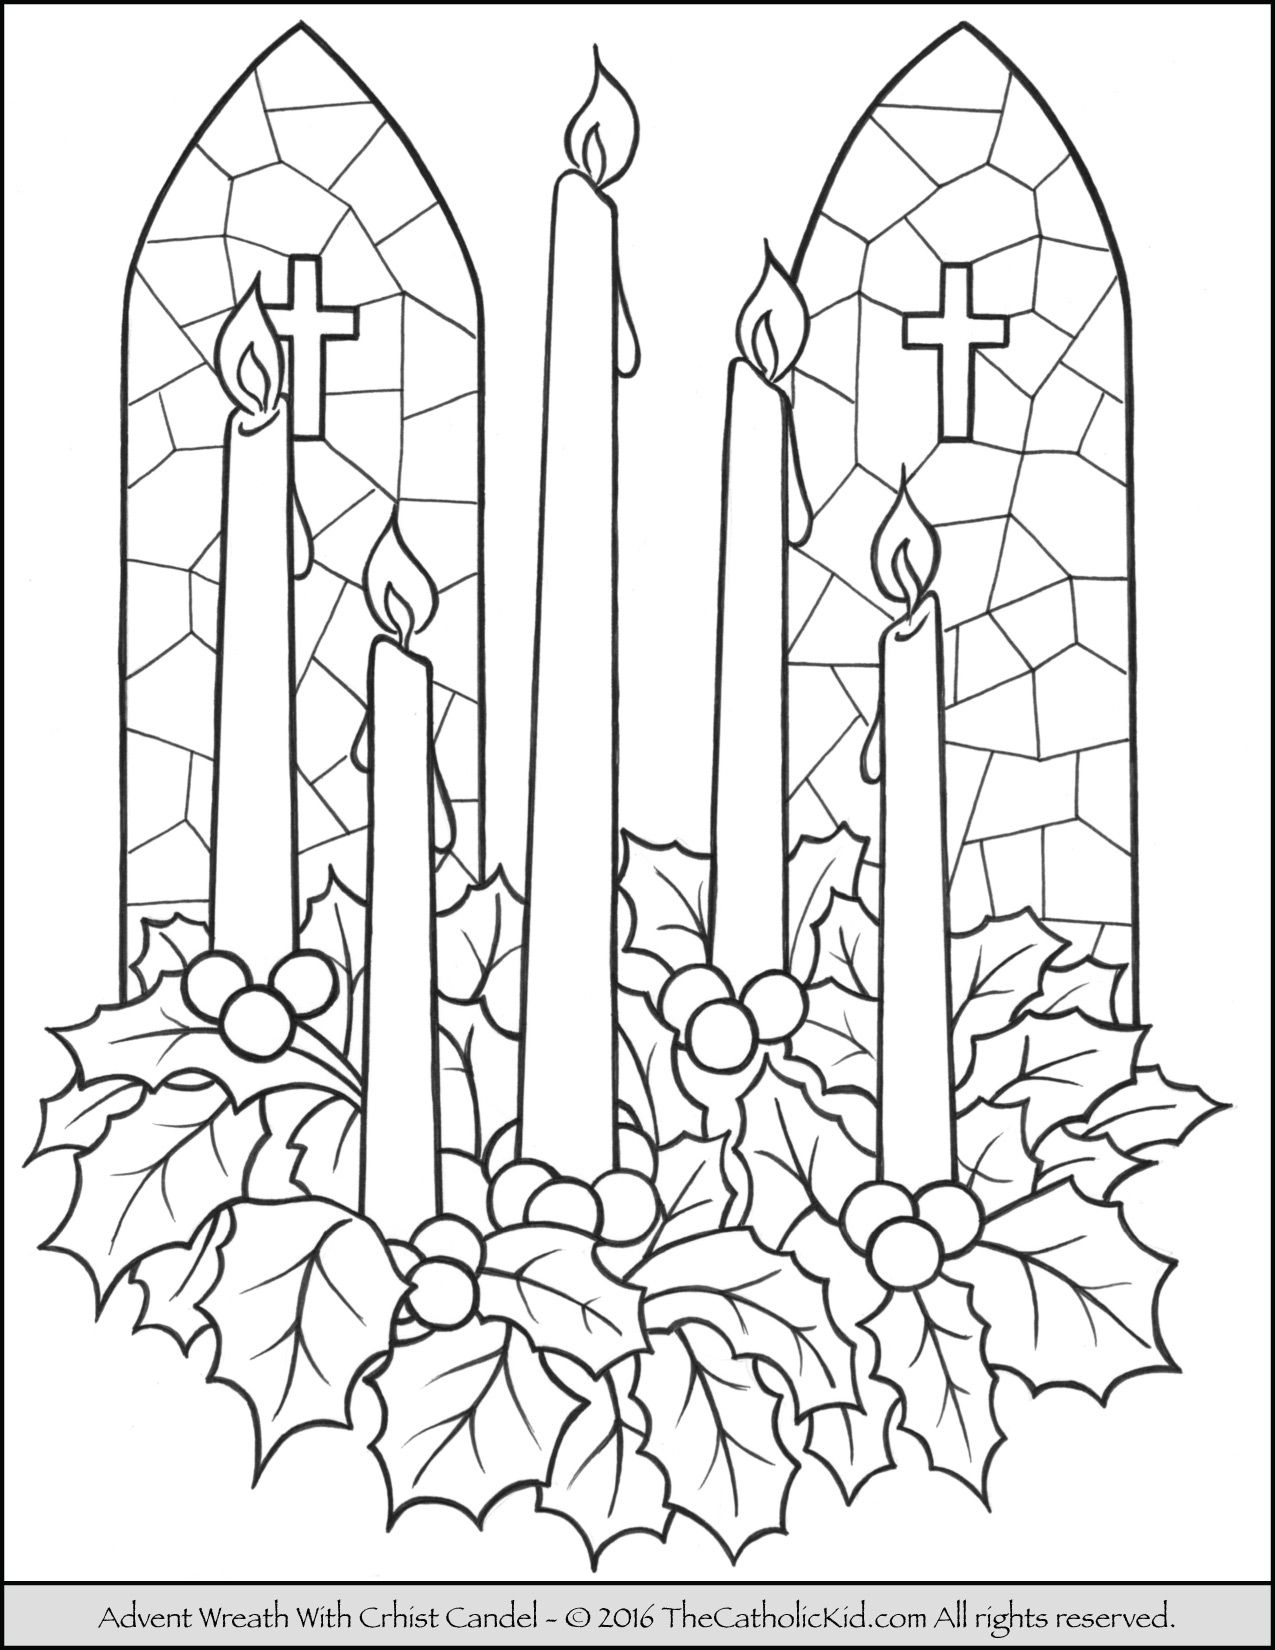 picture of advent wreath for coloring advent wreath coloring page supercoloringcom coloring advent picture for wreath of